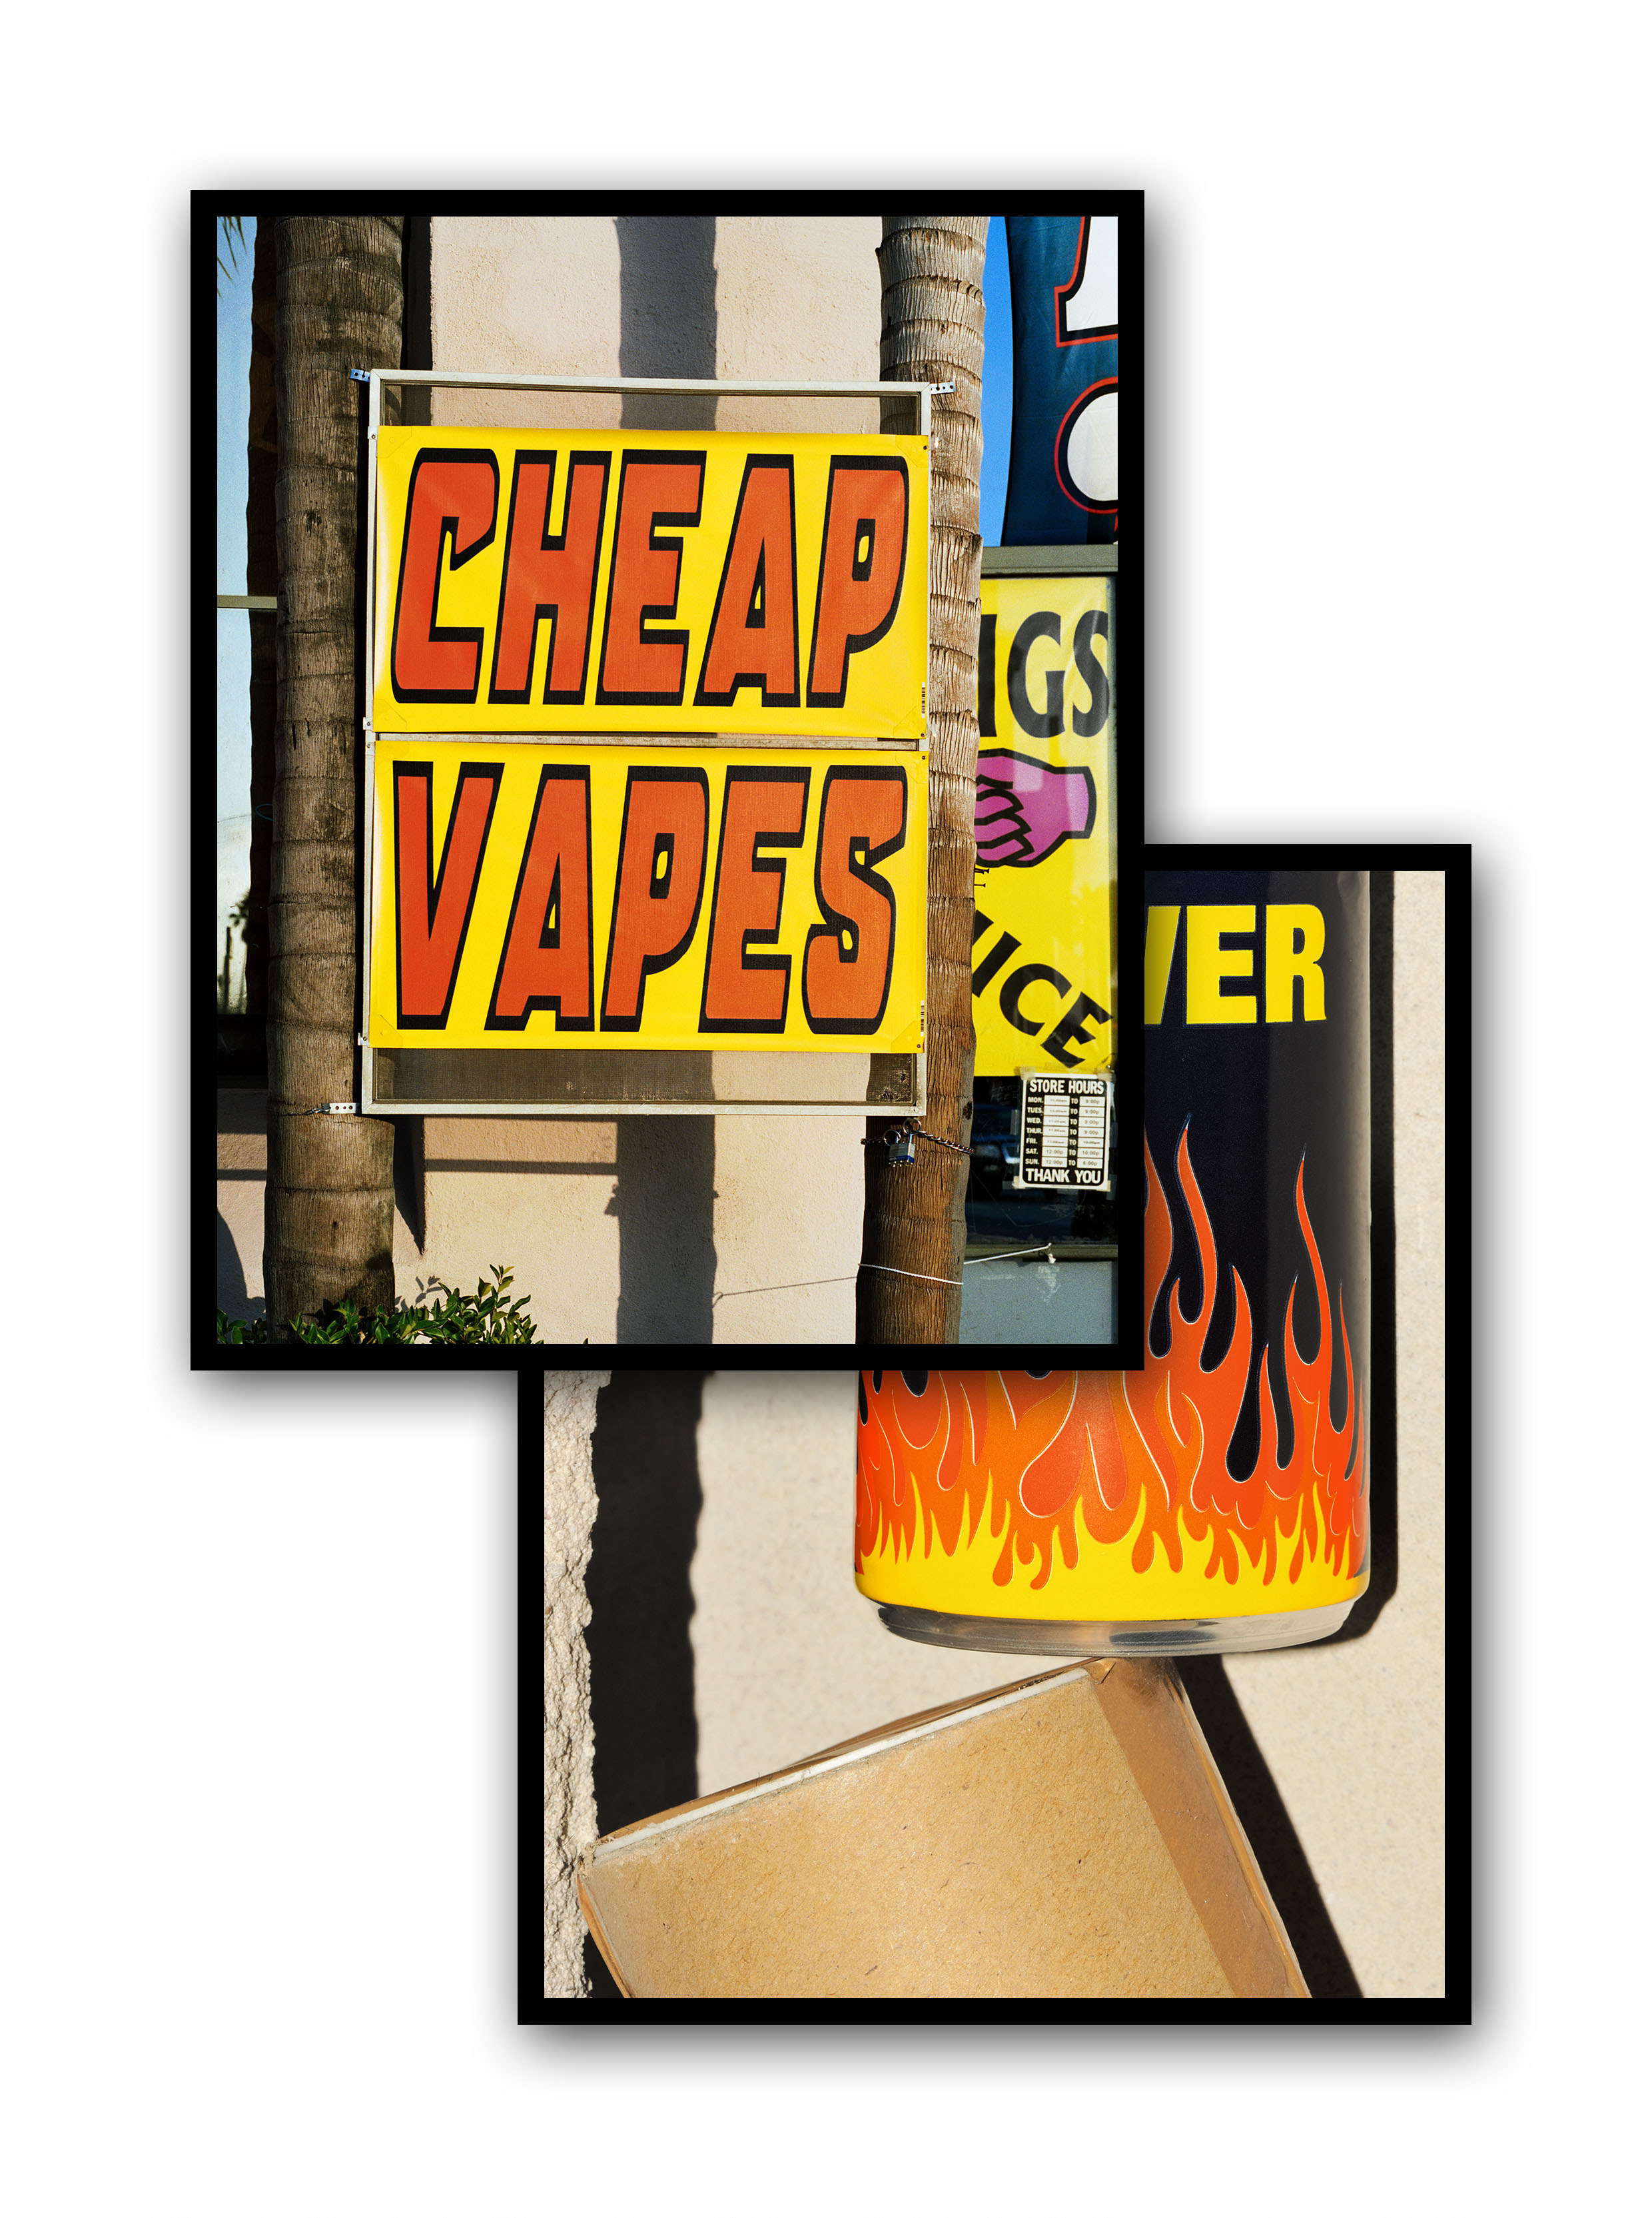 12_CheapVapes, 2018